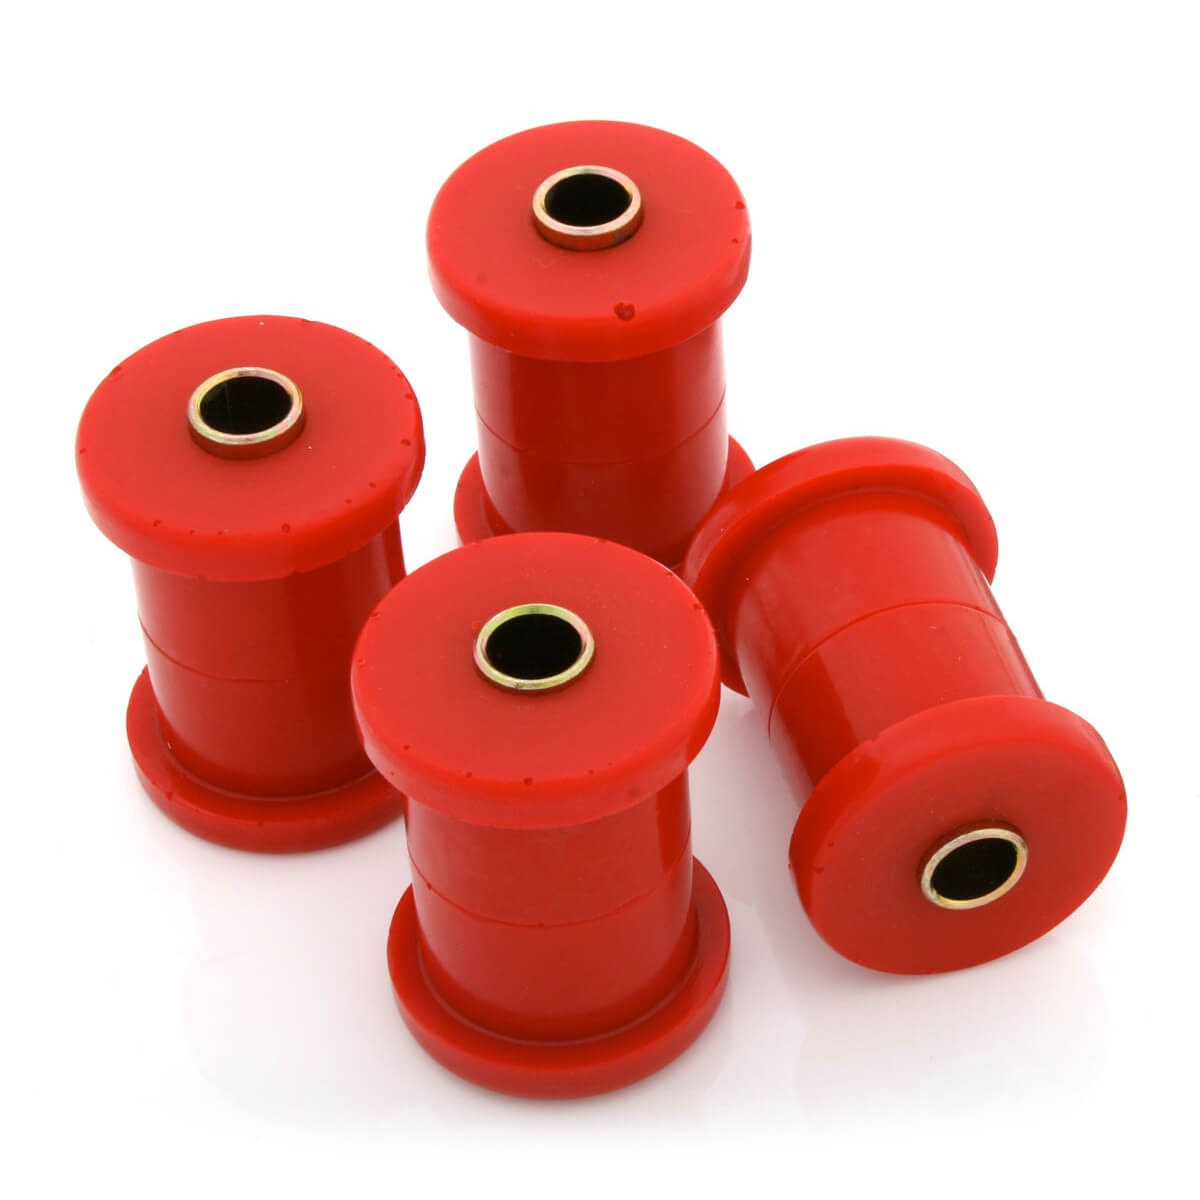 680 114 Prothane Bushing Kit Rear Trailing Arms Moss Motors